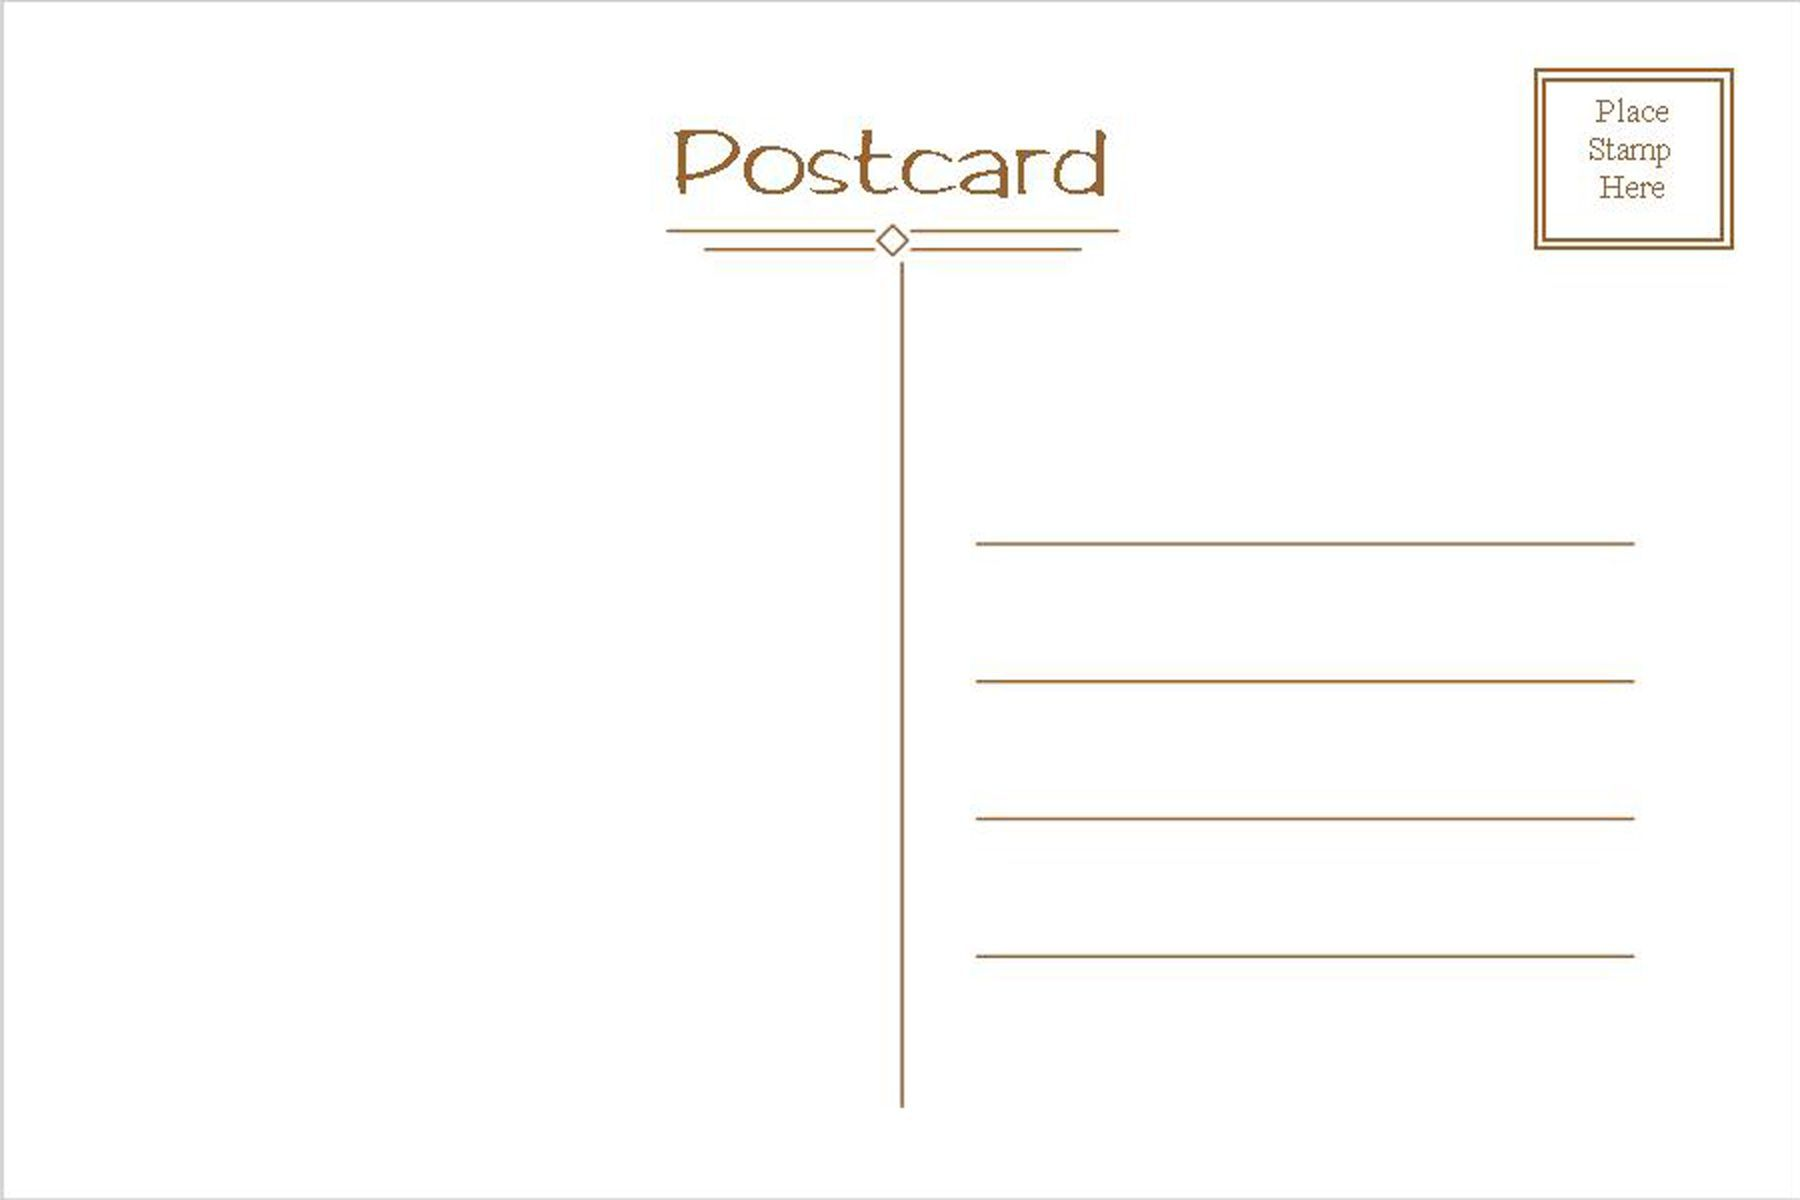 005 Astounding Postcard Template Front And Back Picture  Free WordFull